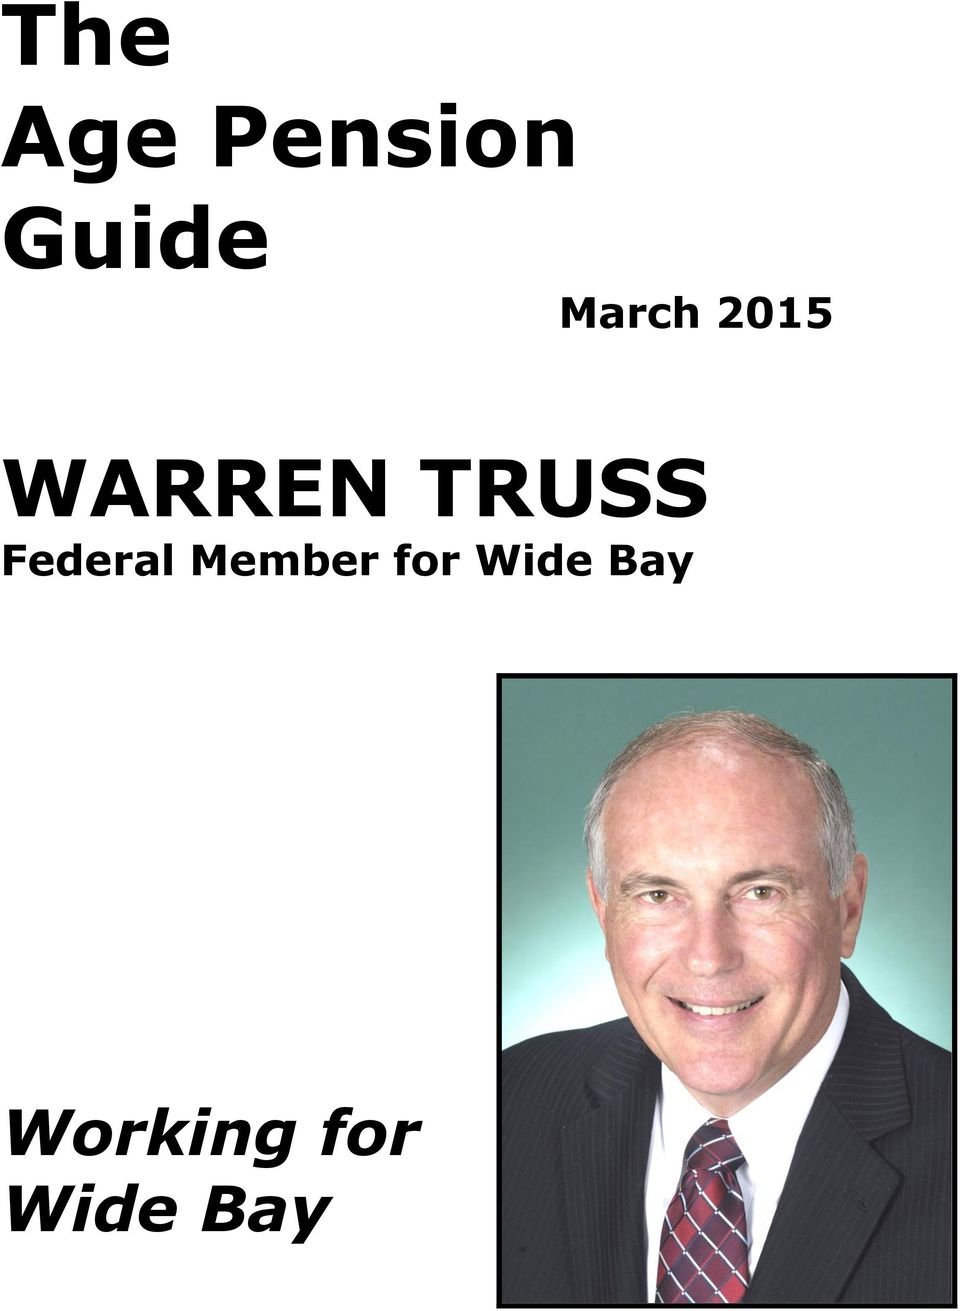 Federal Member for Wide